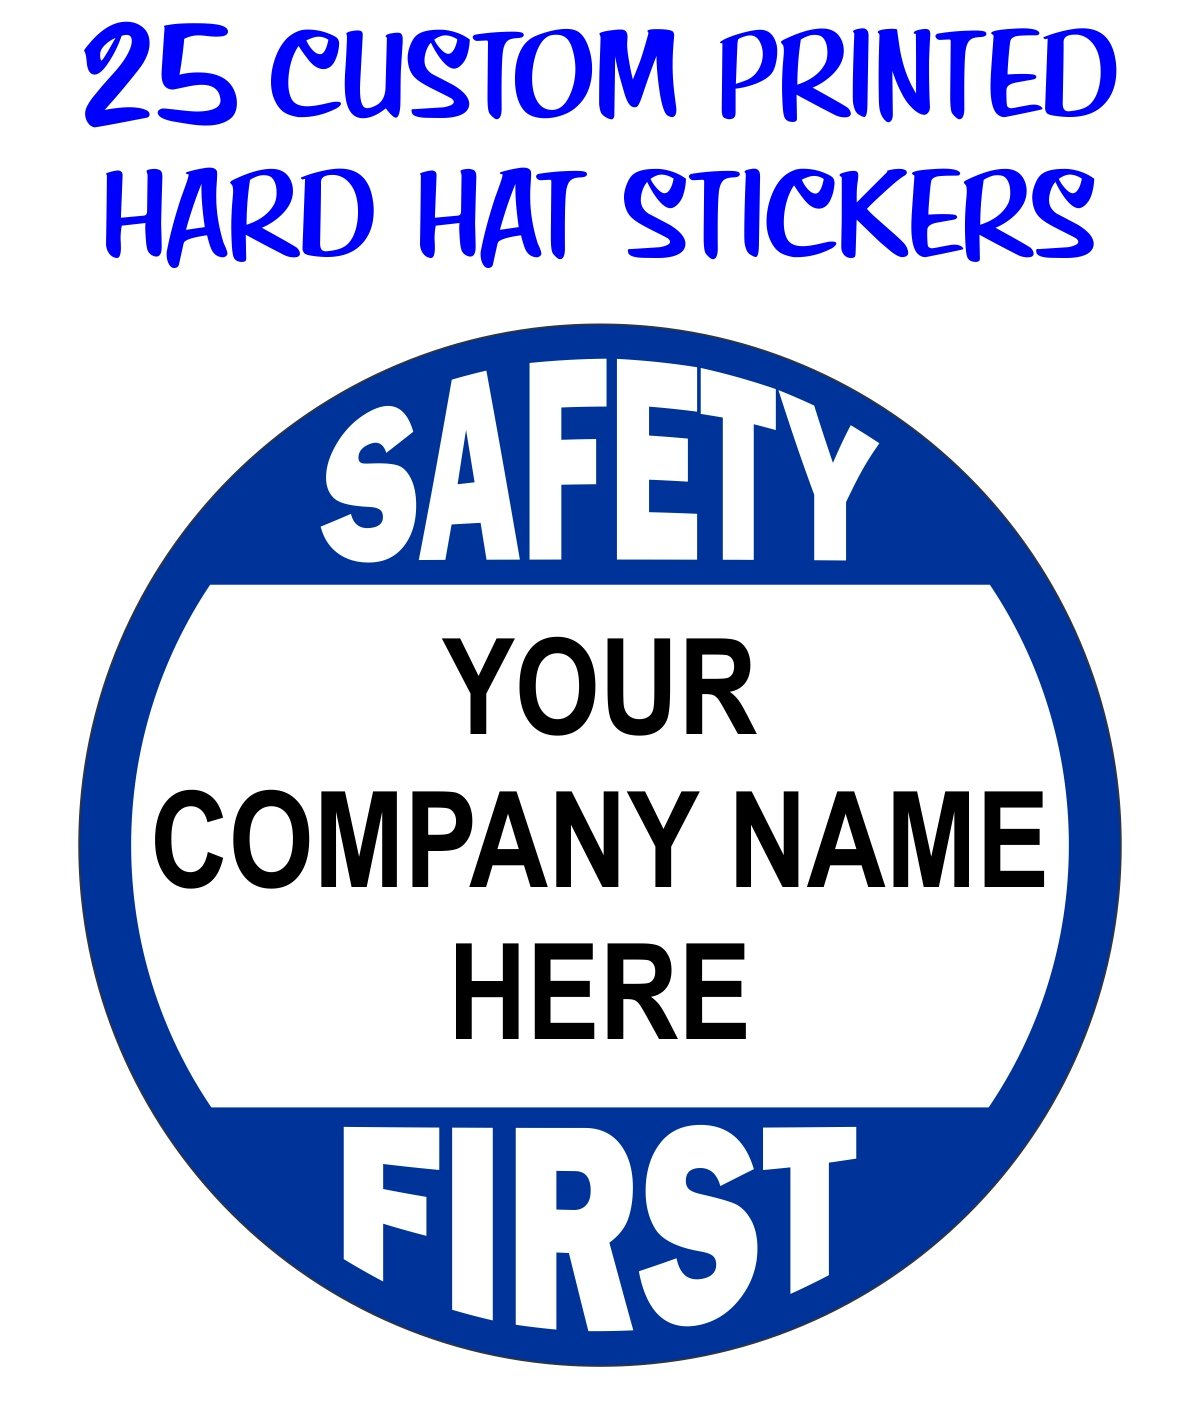 (25-pack) Custom Printed Safety First Hard Hat Stickers | Customize with Your Personalized Company Text | Business Name | Decals Labels Badges Forman Construction by Jay Graphics